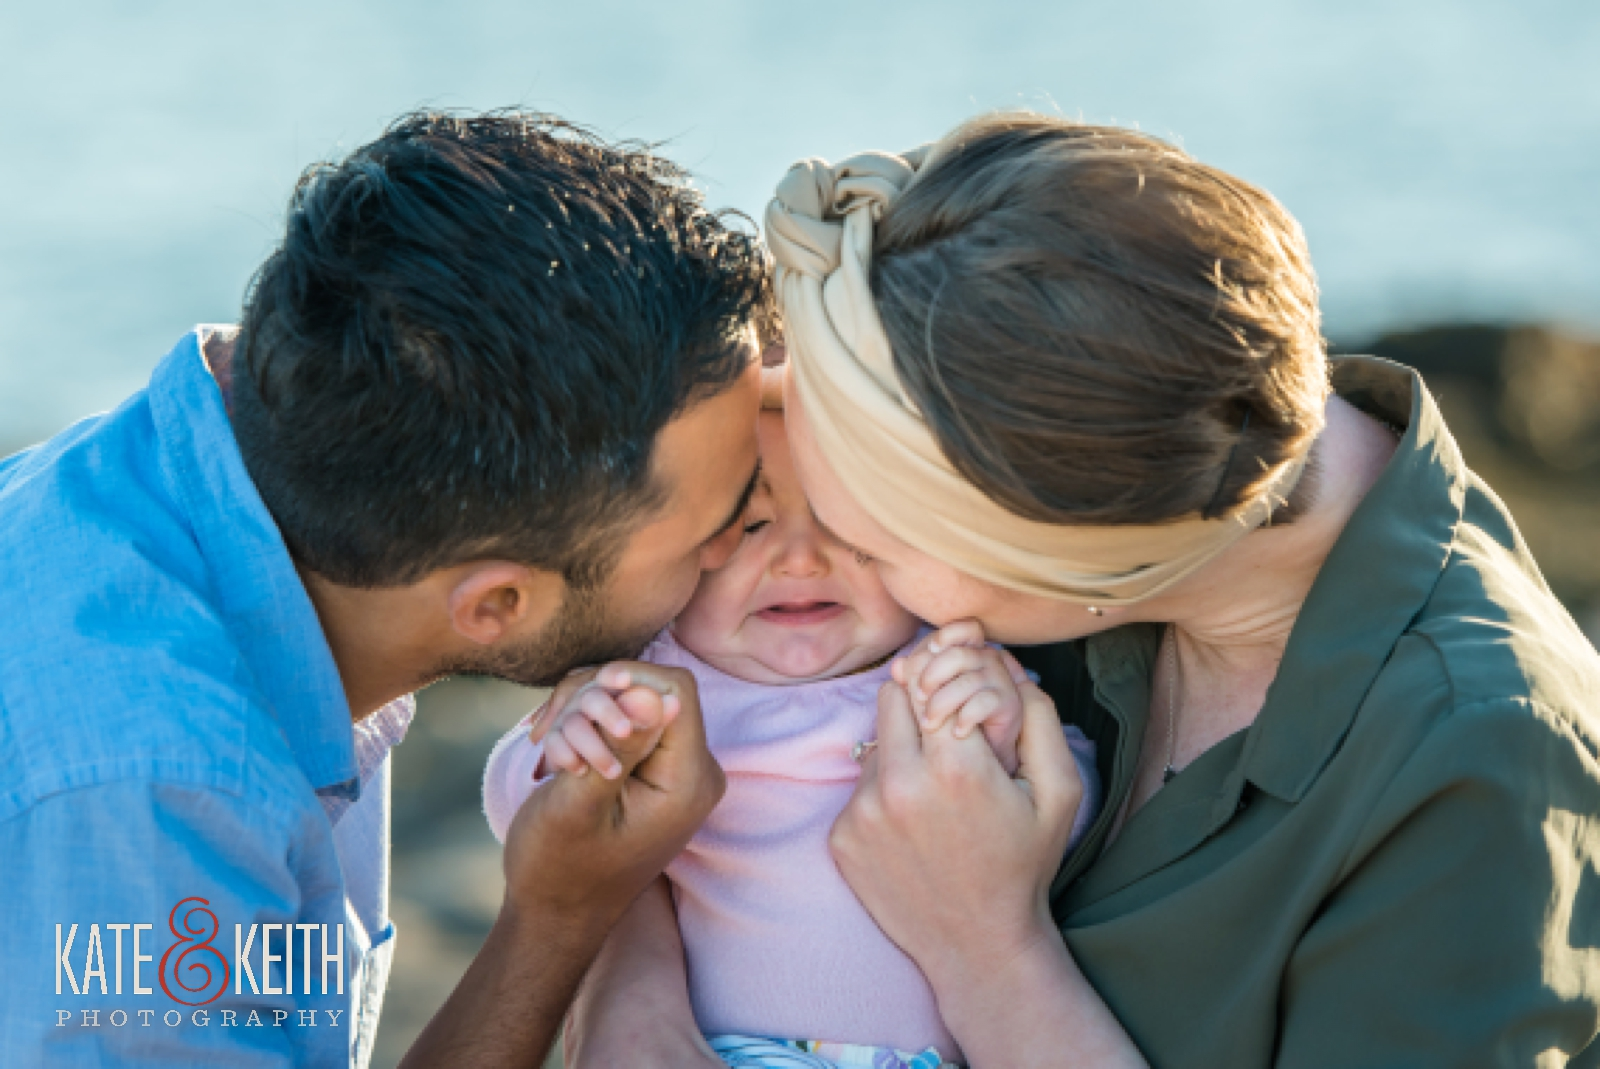 Getting engaged in Acadia National Park, Maine, Mount Desert Island, surprise proposal, proposal photos, wedding proposal, coast, ocean, seaside, young family, couple with baby, engagement photos